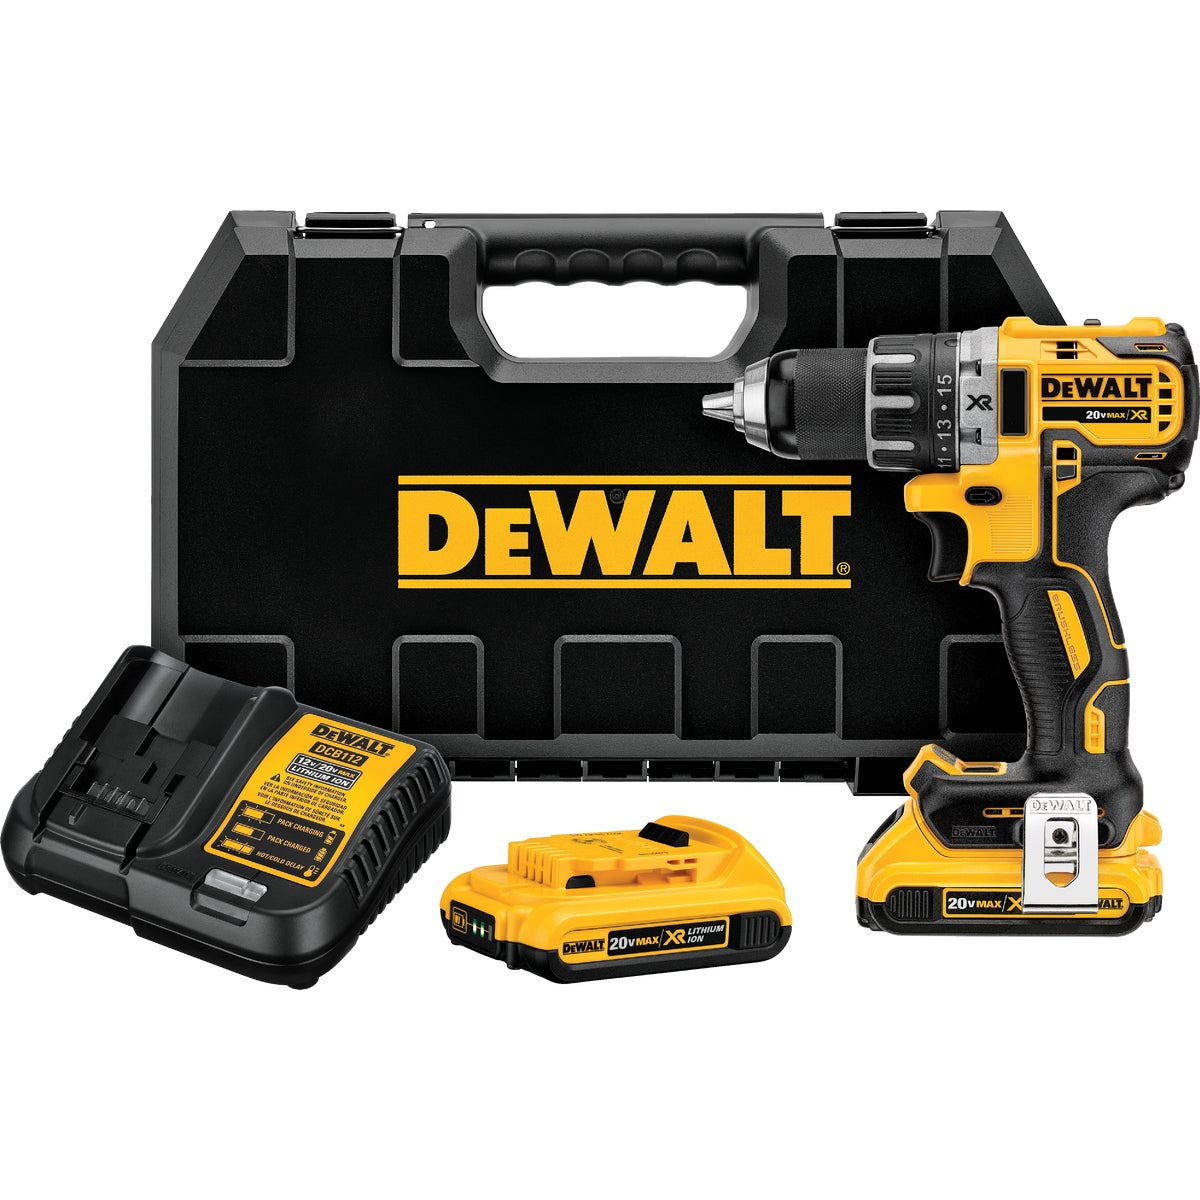 20V MAX BRUSHLESS DRILL - DCD790D2 by DeWalt